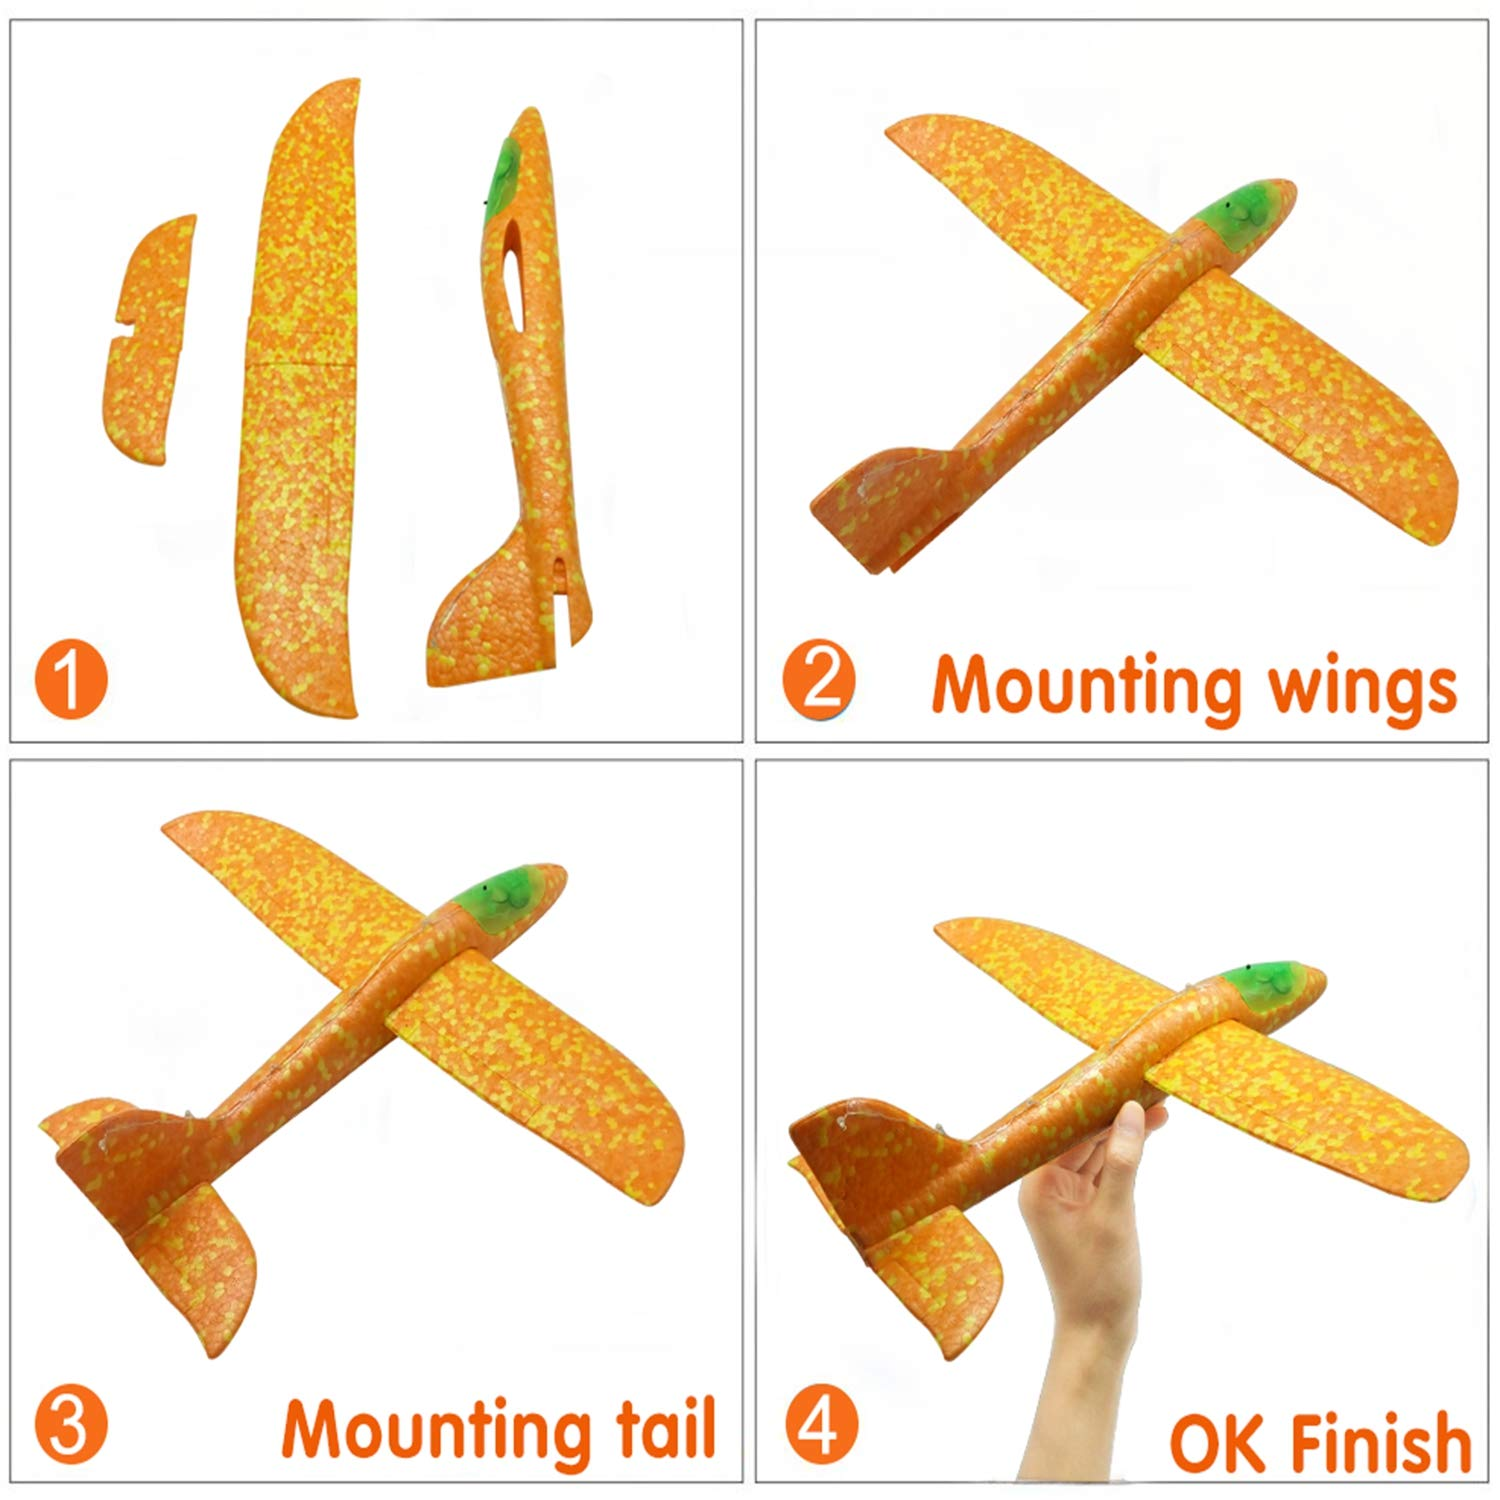 Airplane Toy for Kids, 3 Pack 13.5'' LED Light Up Throwing Foam Airplane Flying Aircraft Plane DIY Glider Aeroplane Model Jet Kit Flying Toys for Boys Girls Teens, Outdoor Sport Game Toys Party Favors by GreaSmart (Image #8)